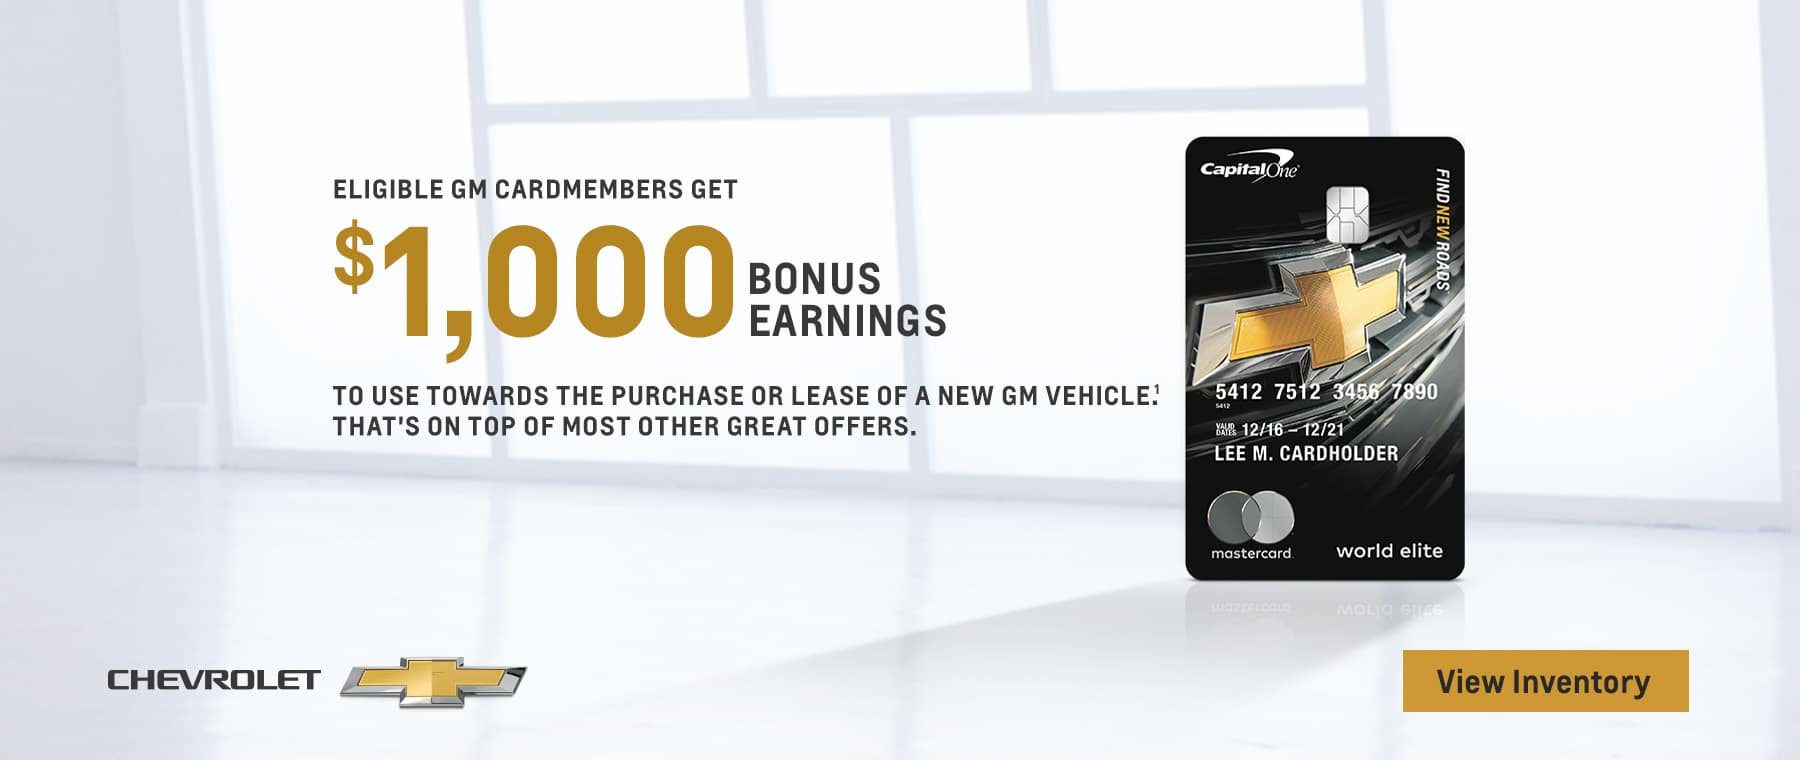 eligible gm cardmembers get 1000 bonus earnings